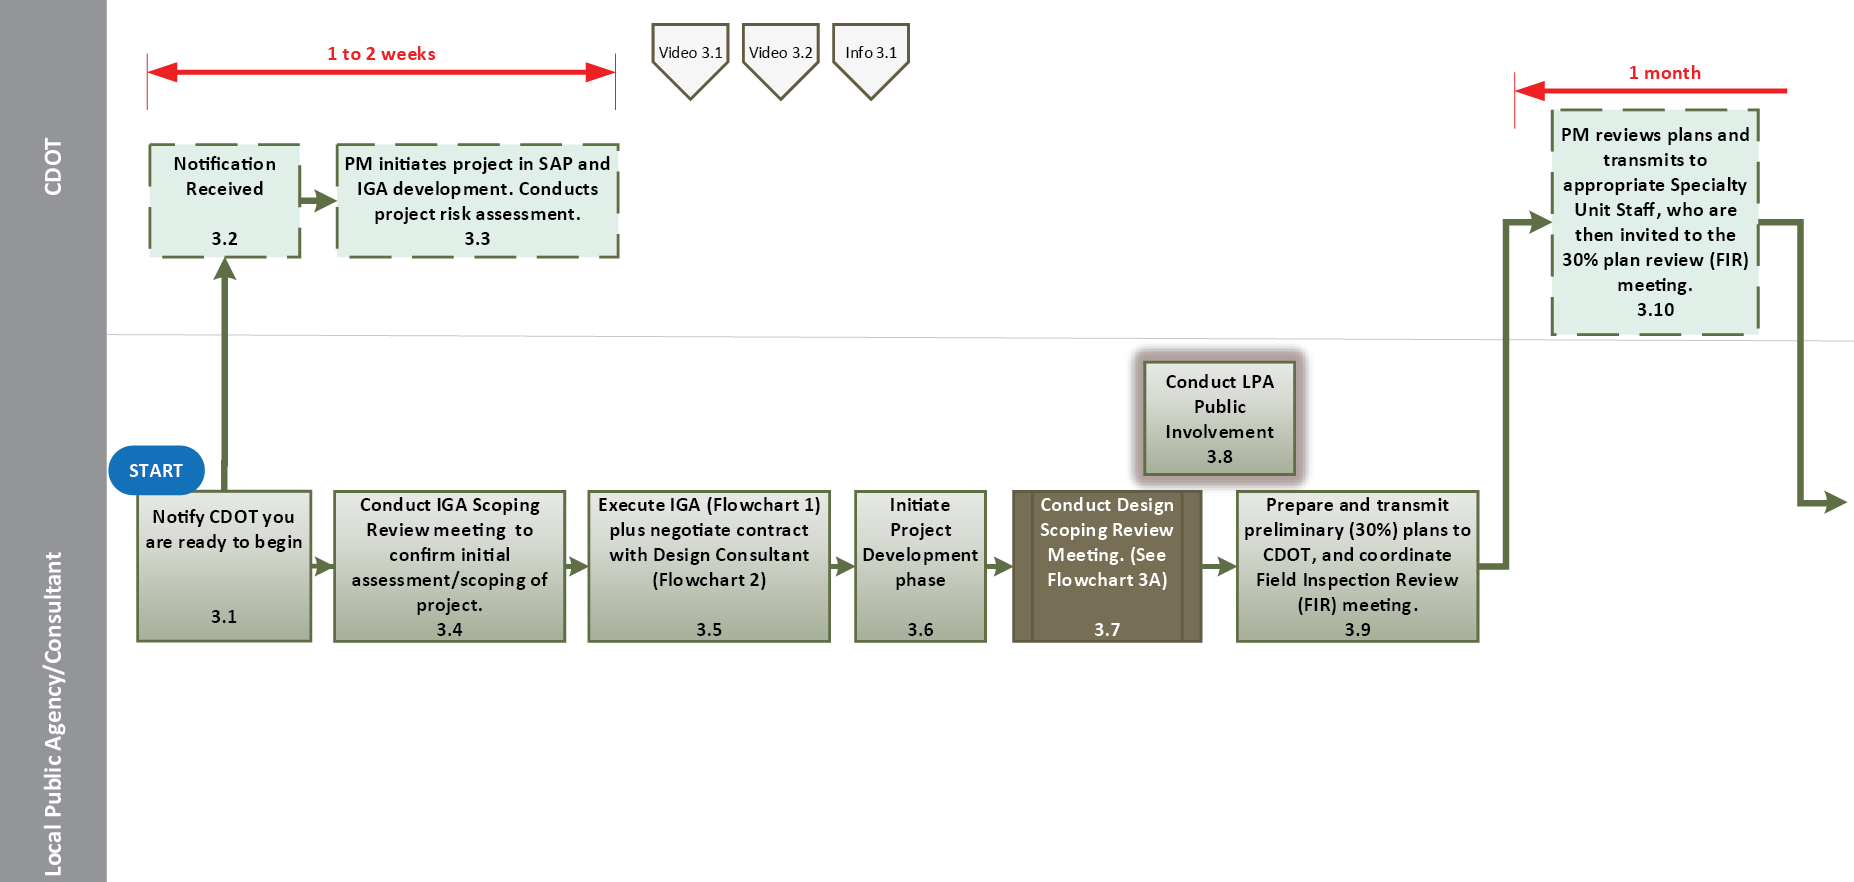 Flowchart 3 project development process ntp through pse approval flowchart 3a nvjuhfo Gallery